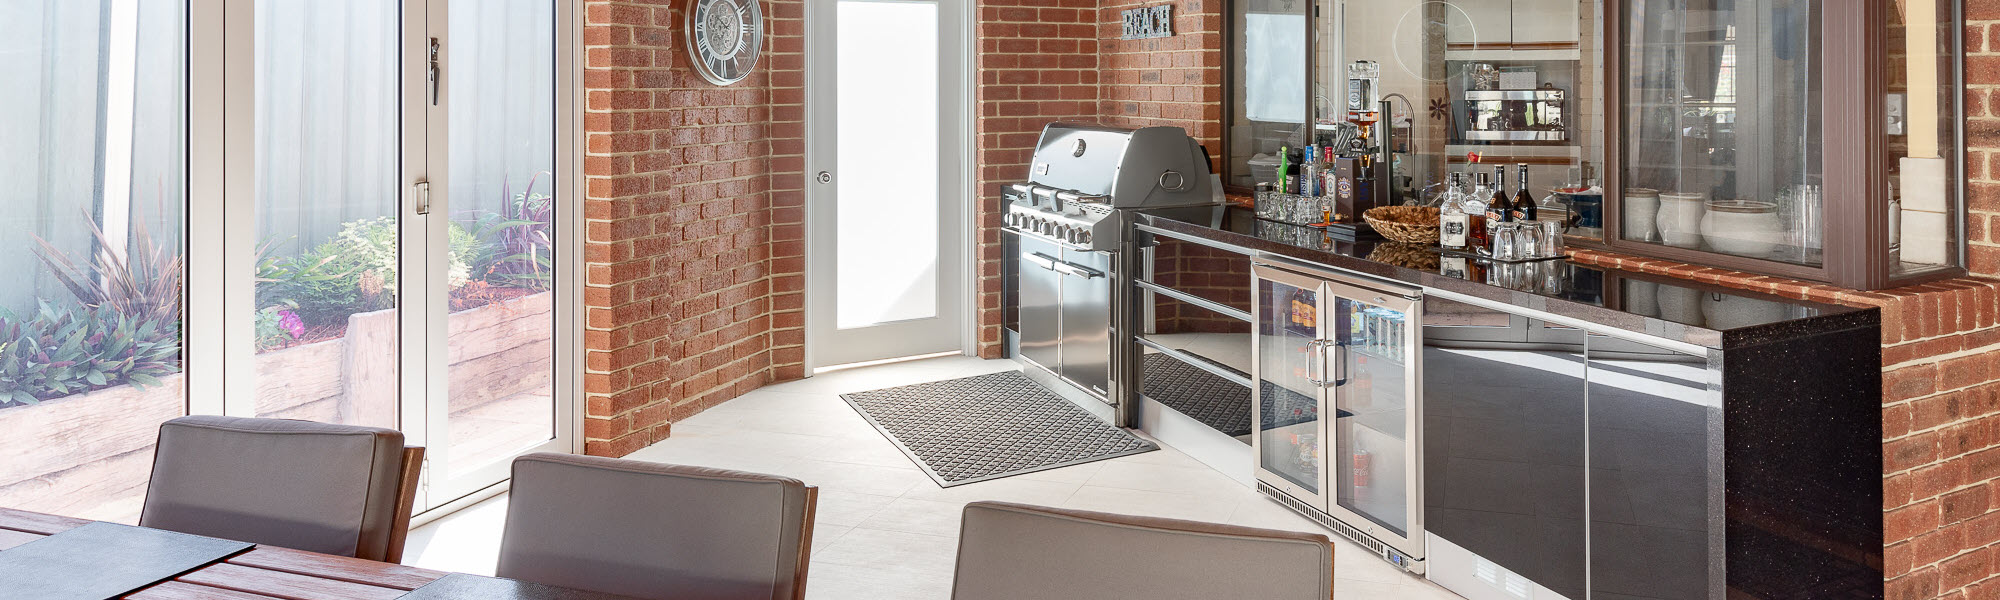 outdoor kitchens perth - the outdoor chef - banner